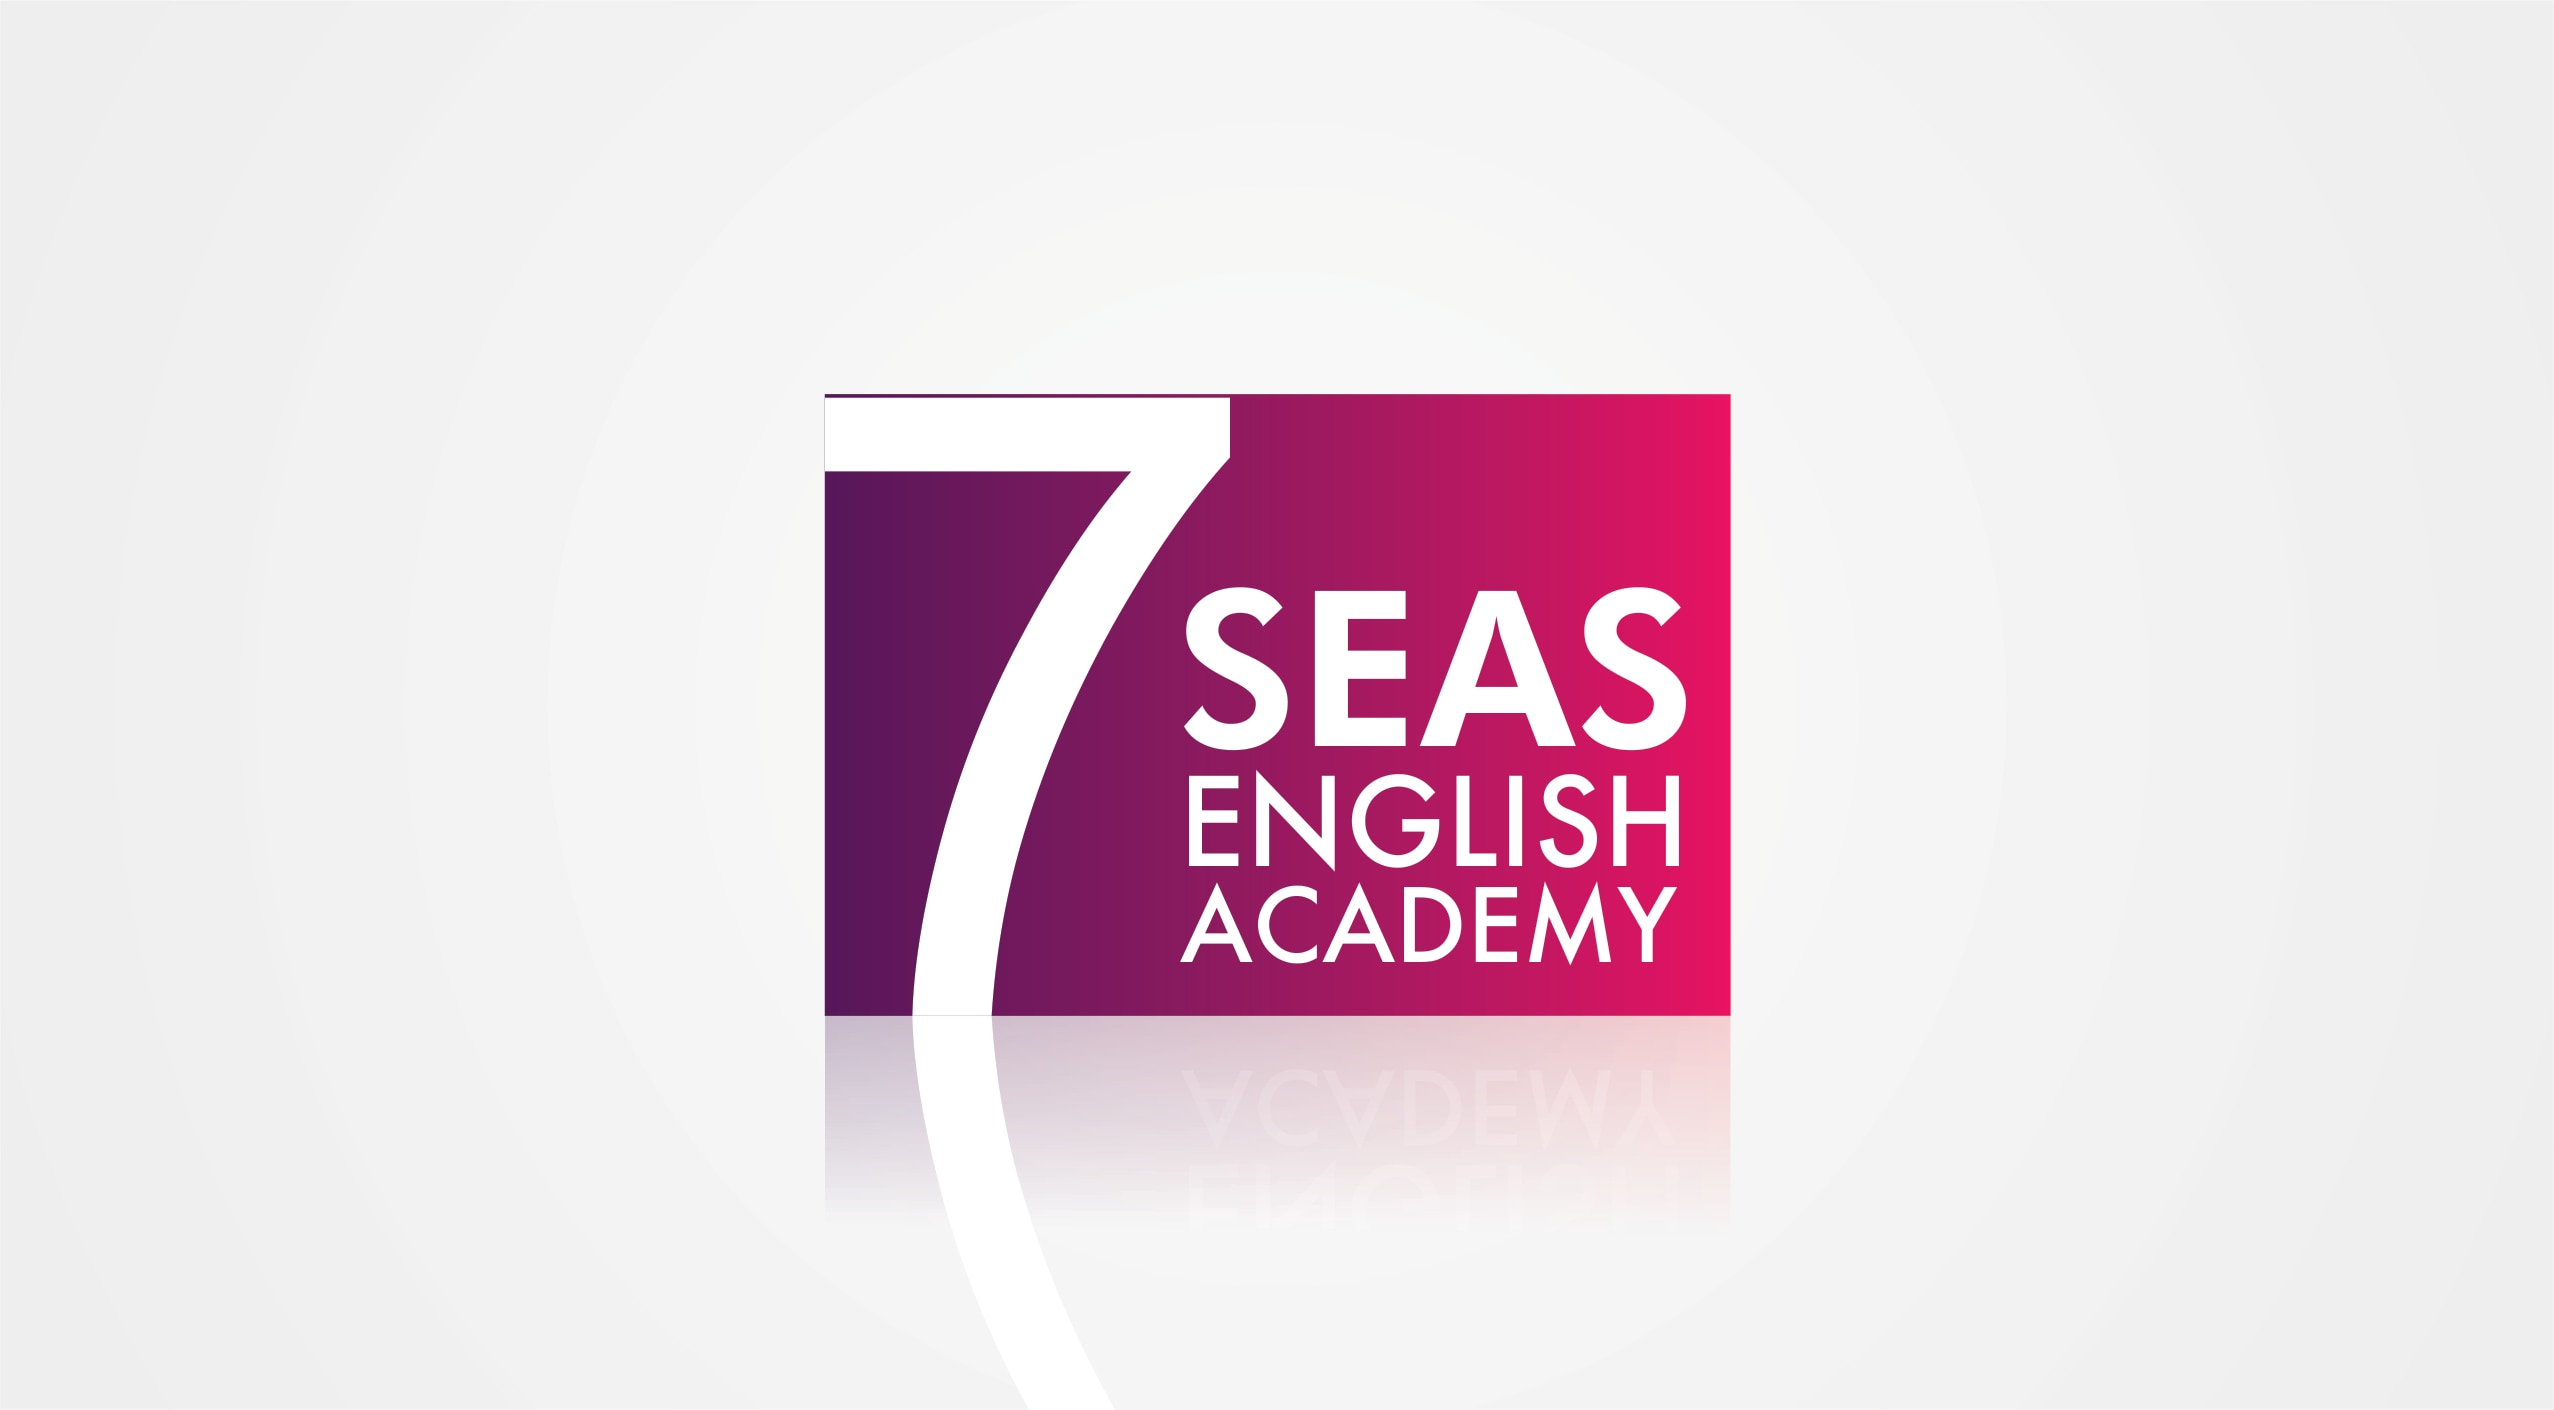 To Downlad PTE Software Click www.7seasenglishpte.com